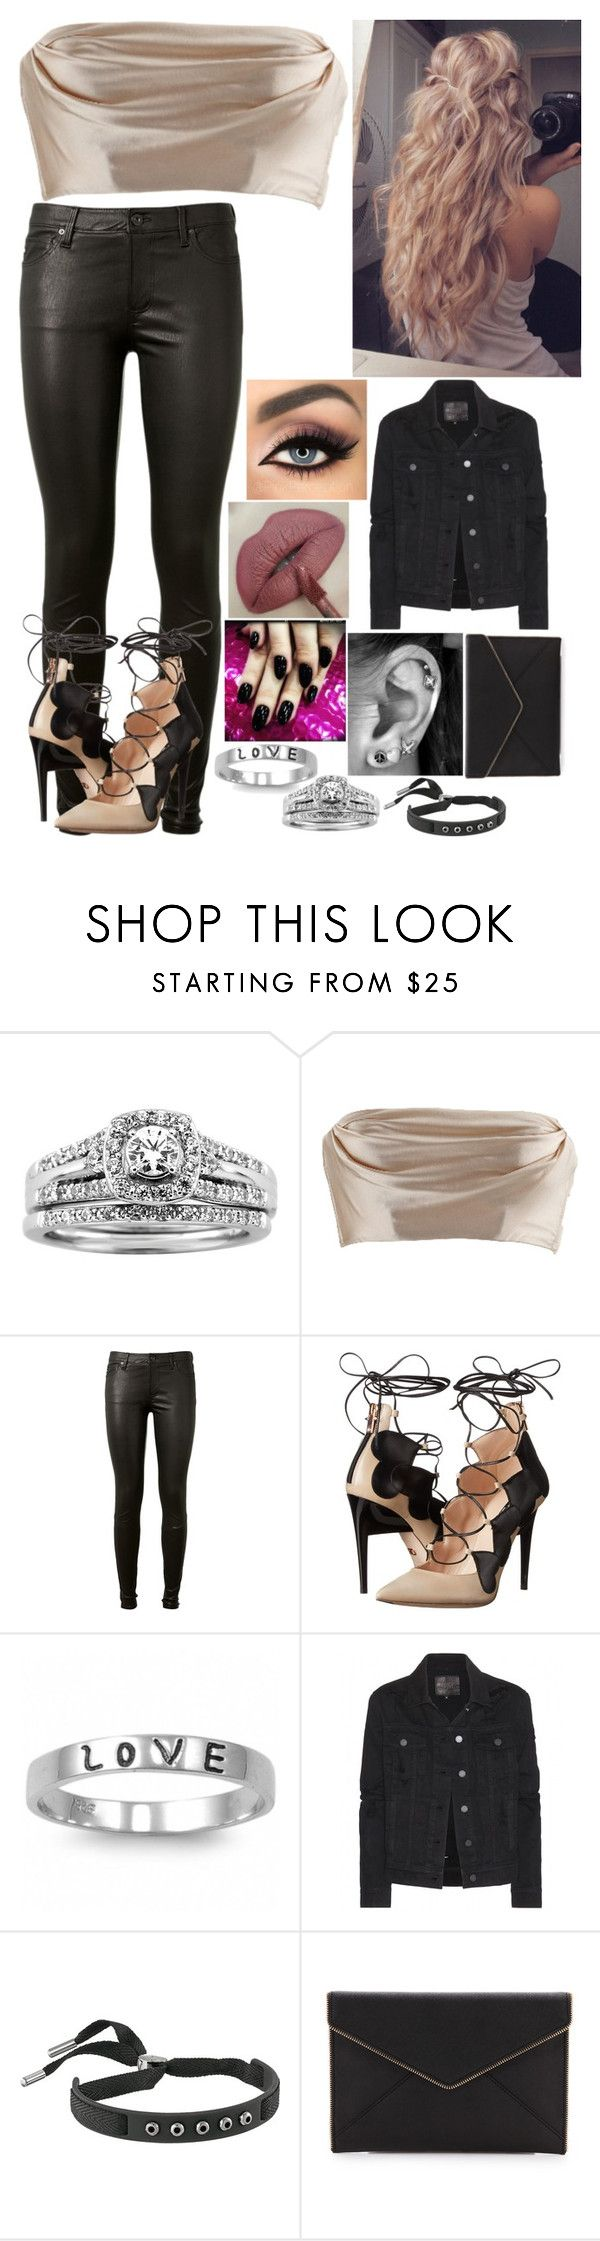 """Untitled #2945"" by nicolerunnels ❤ liked on Polyvore featuring A.Jaffe, AG Adriano Goldschmied, tarte, Ruthie Davis, Fantasy Jewelry Box, Paige Denim, Marc by Marc Jacobs and Rebecca Minkoff"